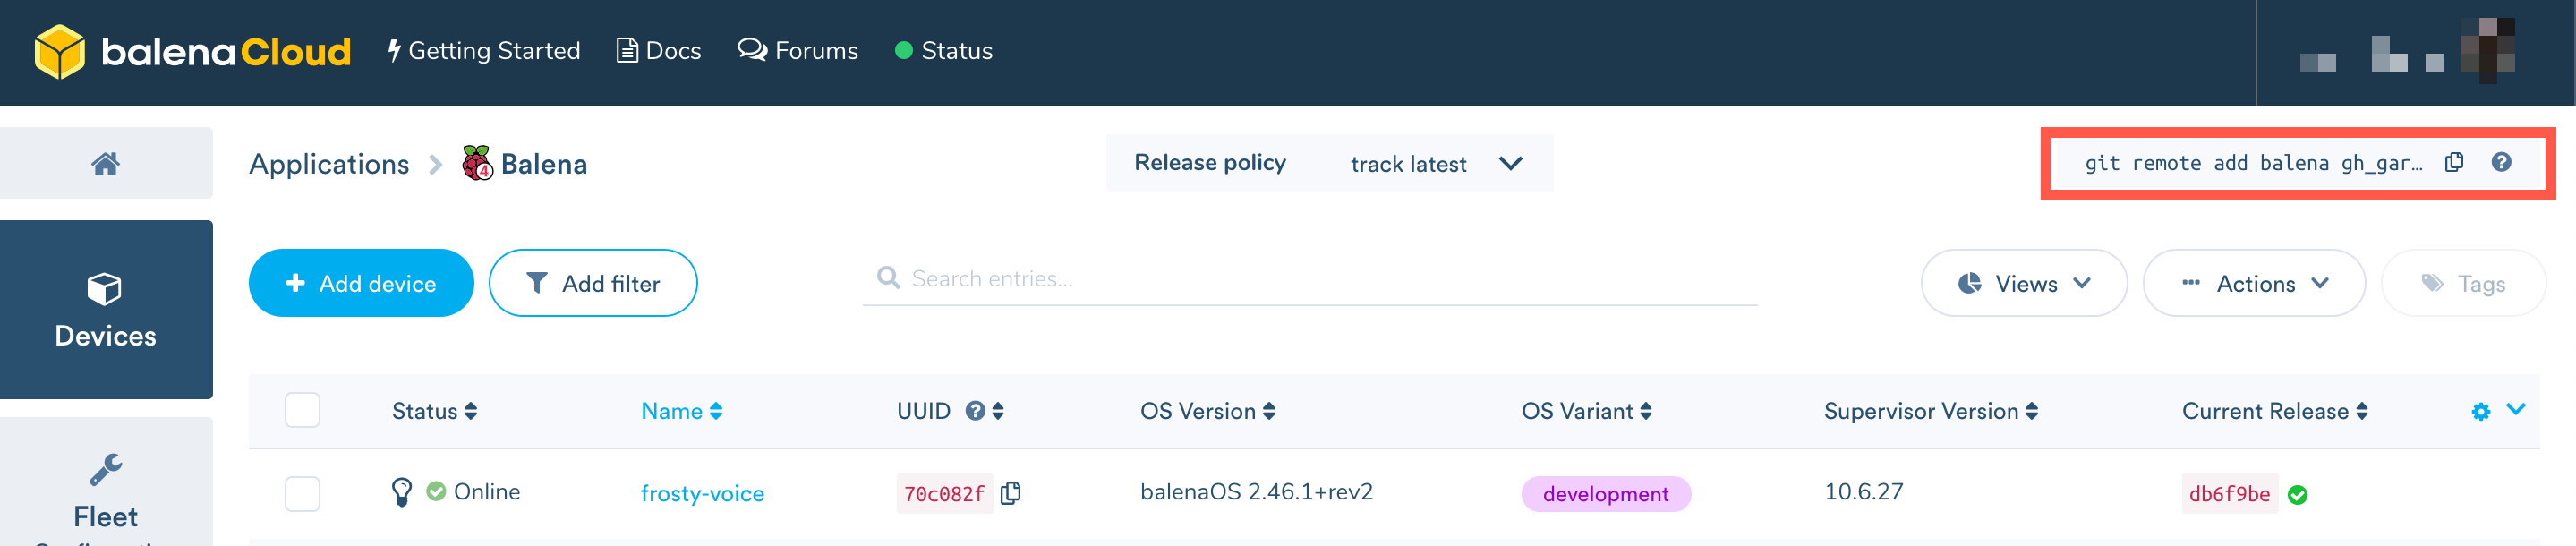 Deploy to your fleet - Balena Documentation